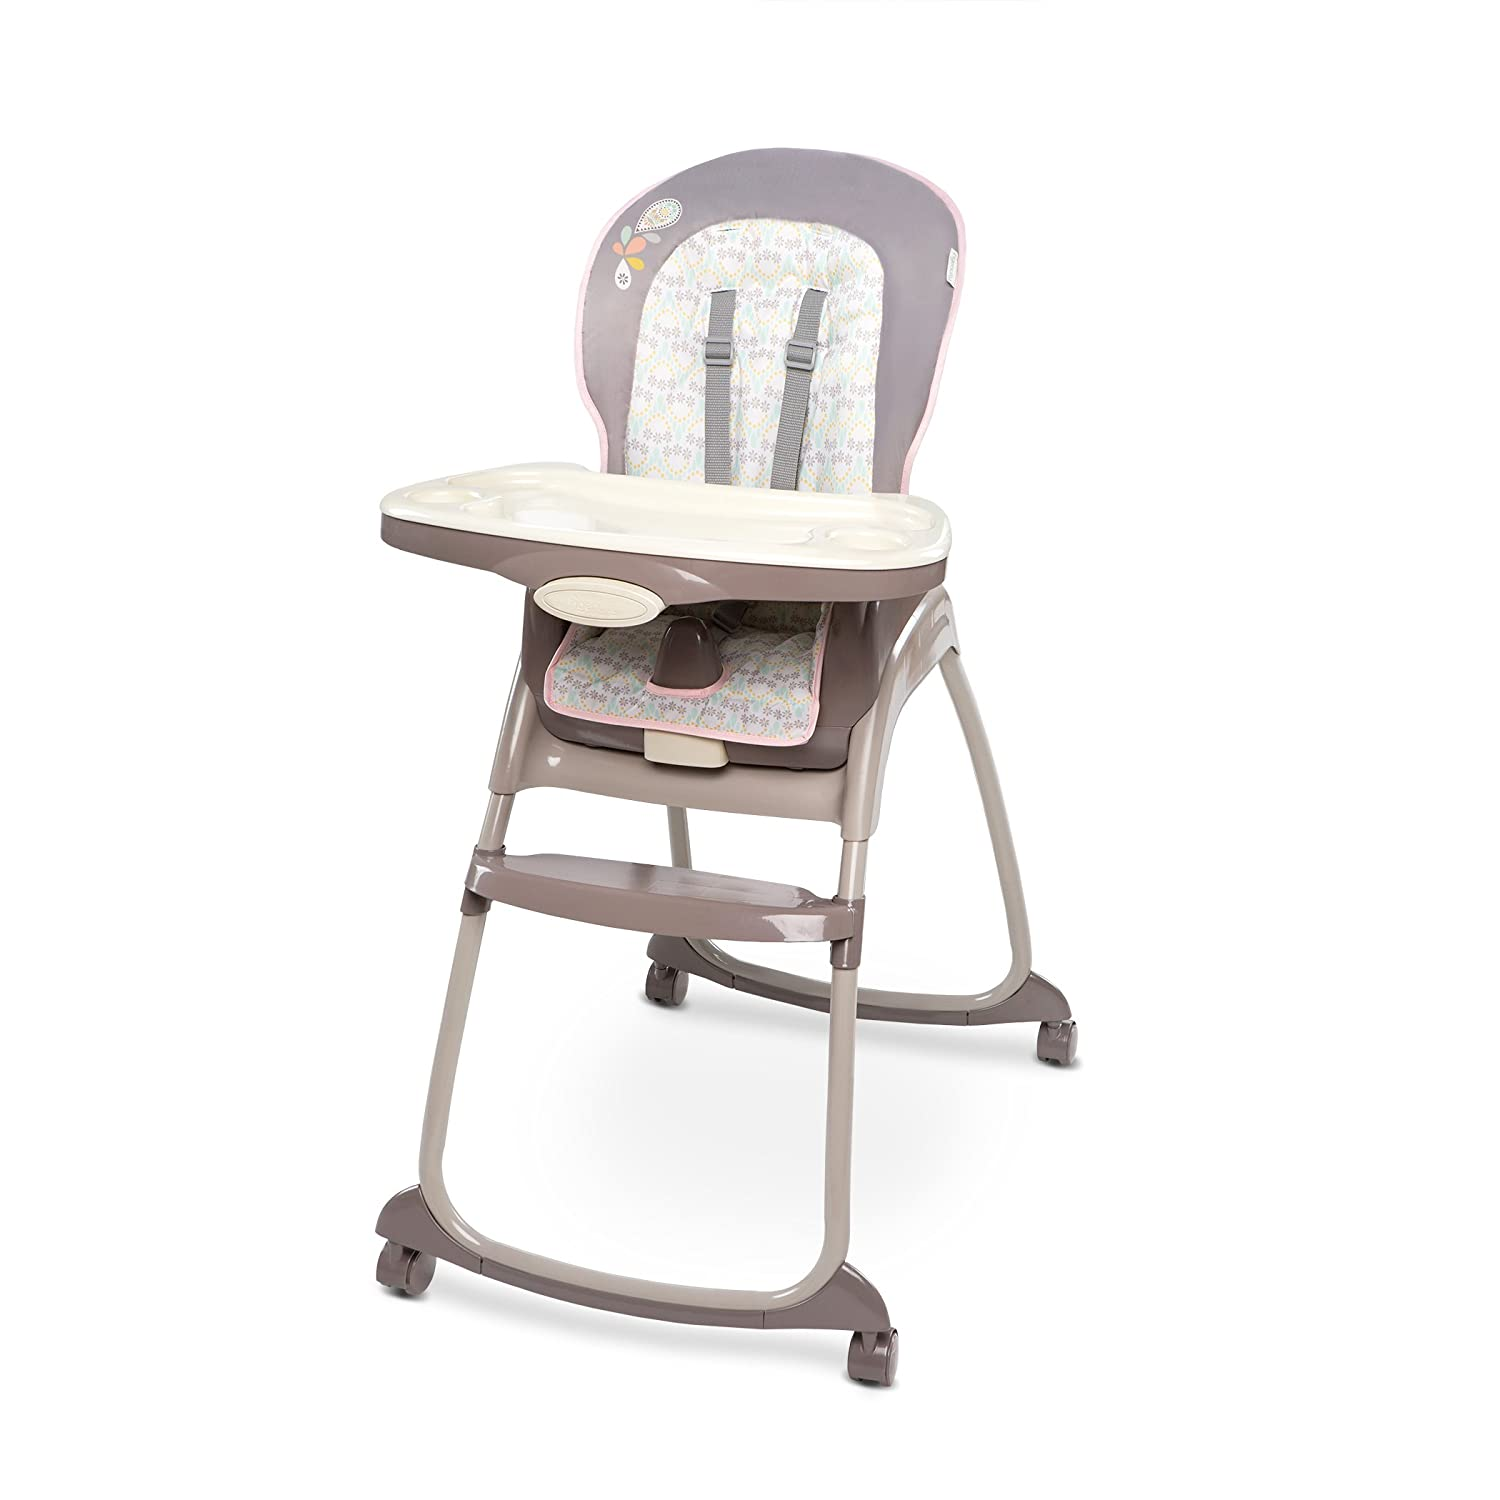 Ingenuity Trio 3 in 1 High Chair Deluxe Piper Amazon Baby